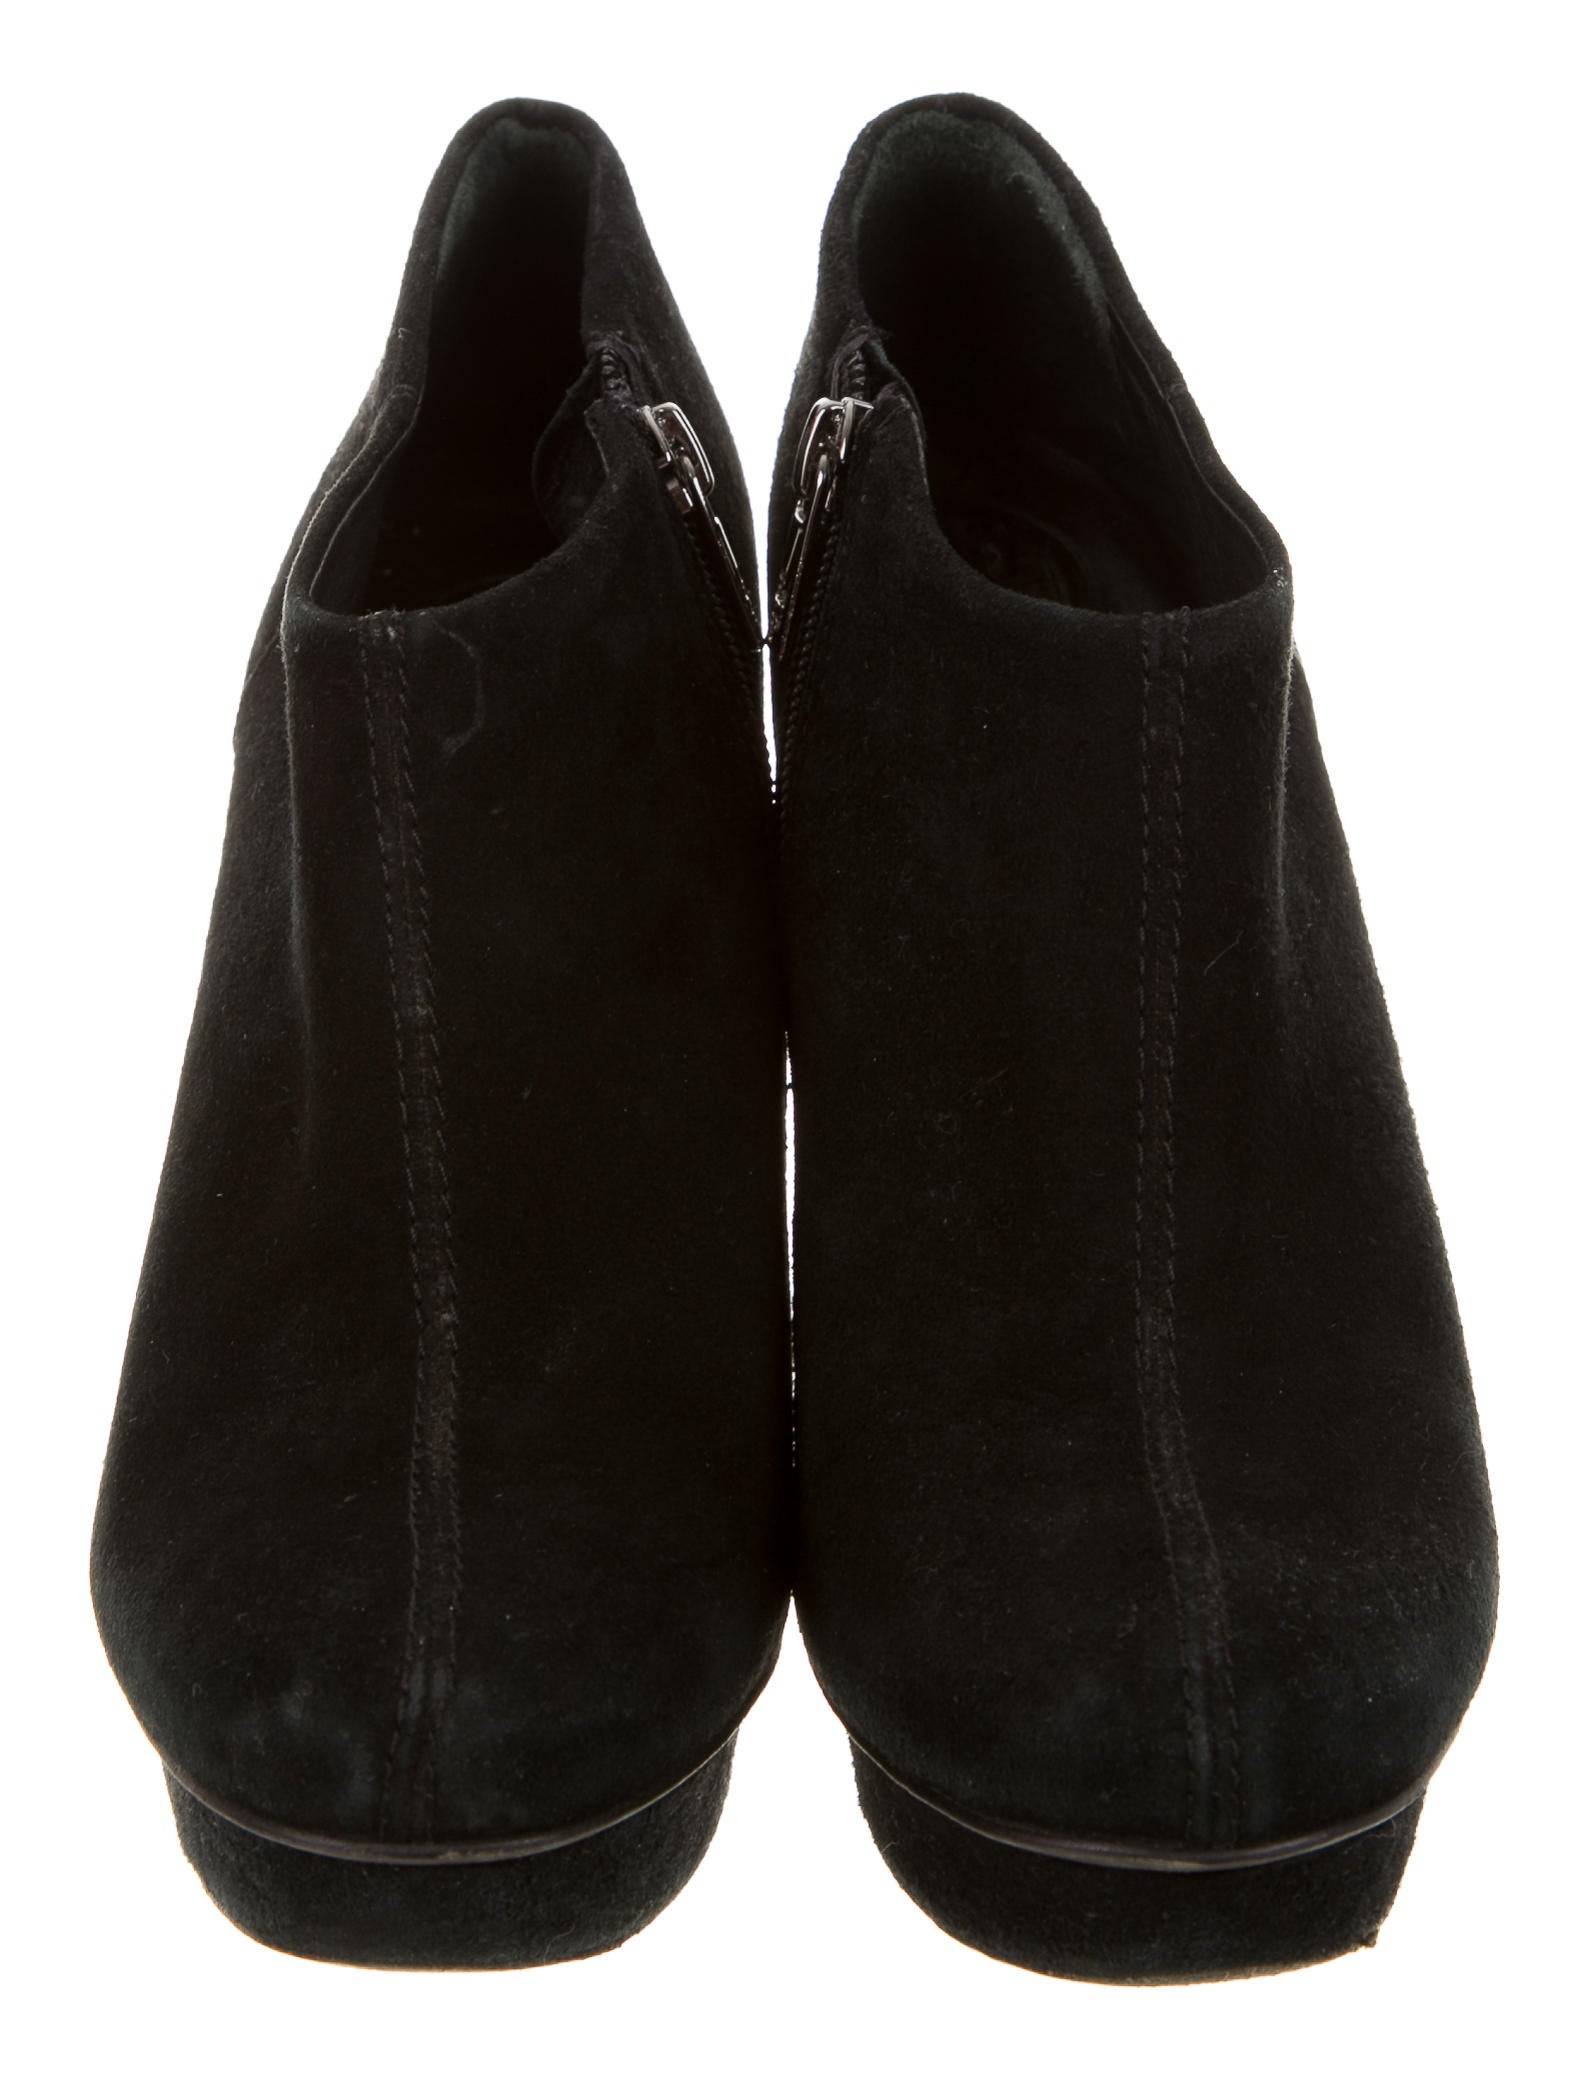 burch suede toe boots shoes wto70014 the